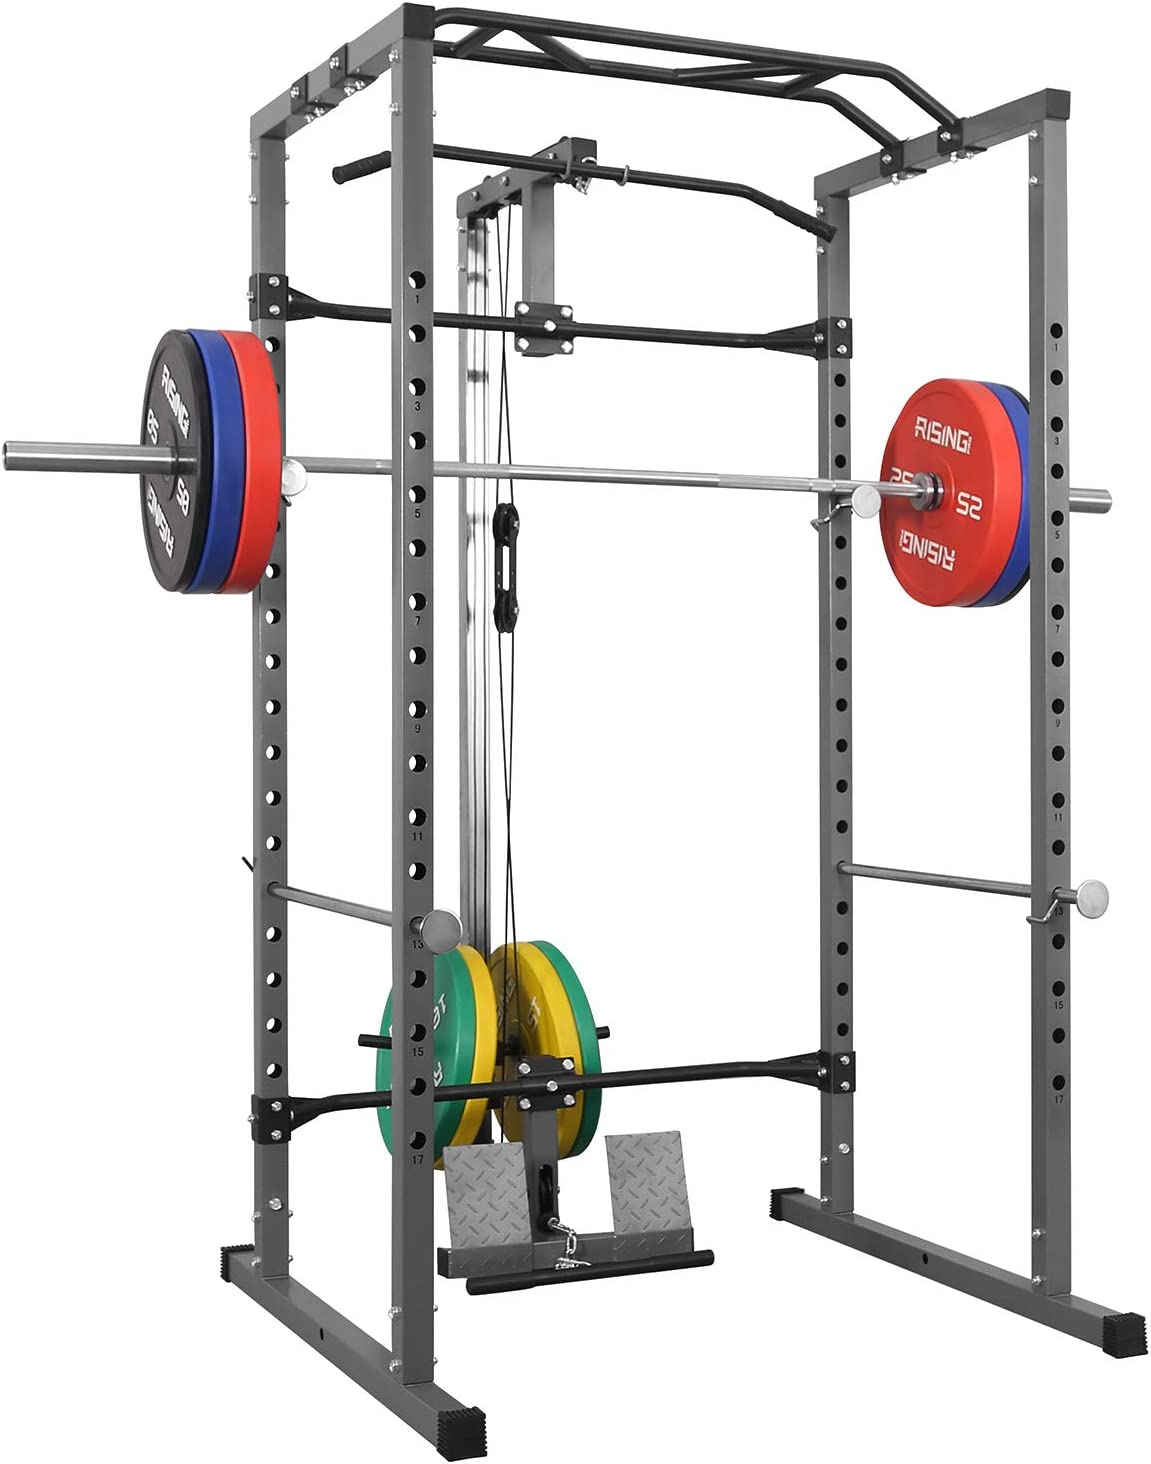 Kicode Power Squat Rack, Heavy Duty Multi-Function Power Cage Rack, Home Gym Exercise Bench Press Weightlifting Workout Station, Weight Capacity 1000 Pounds